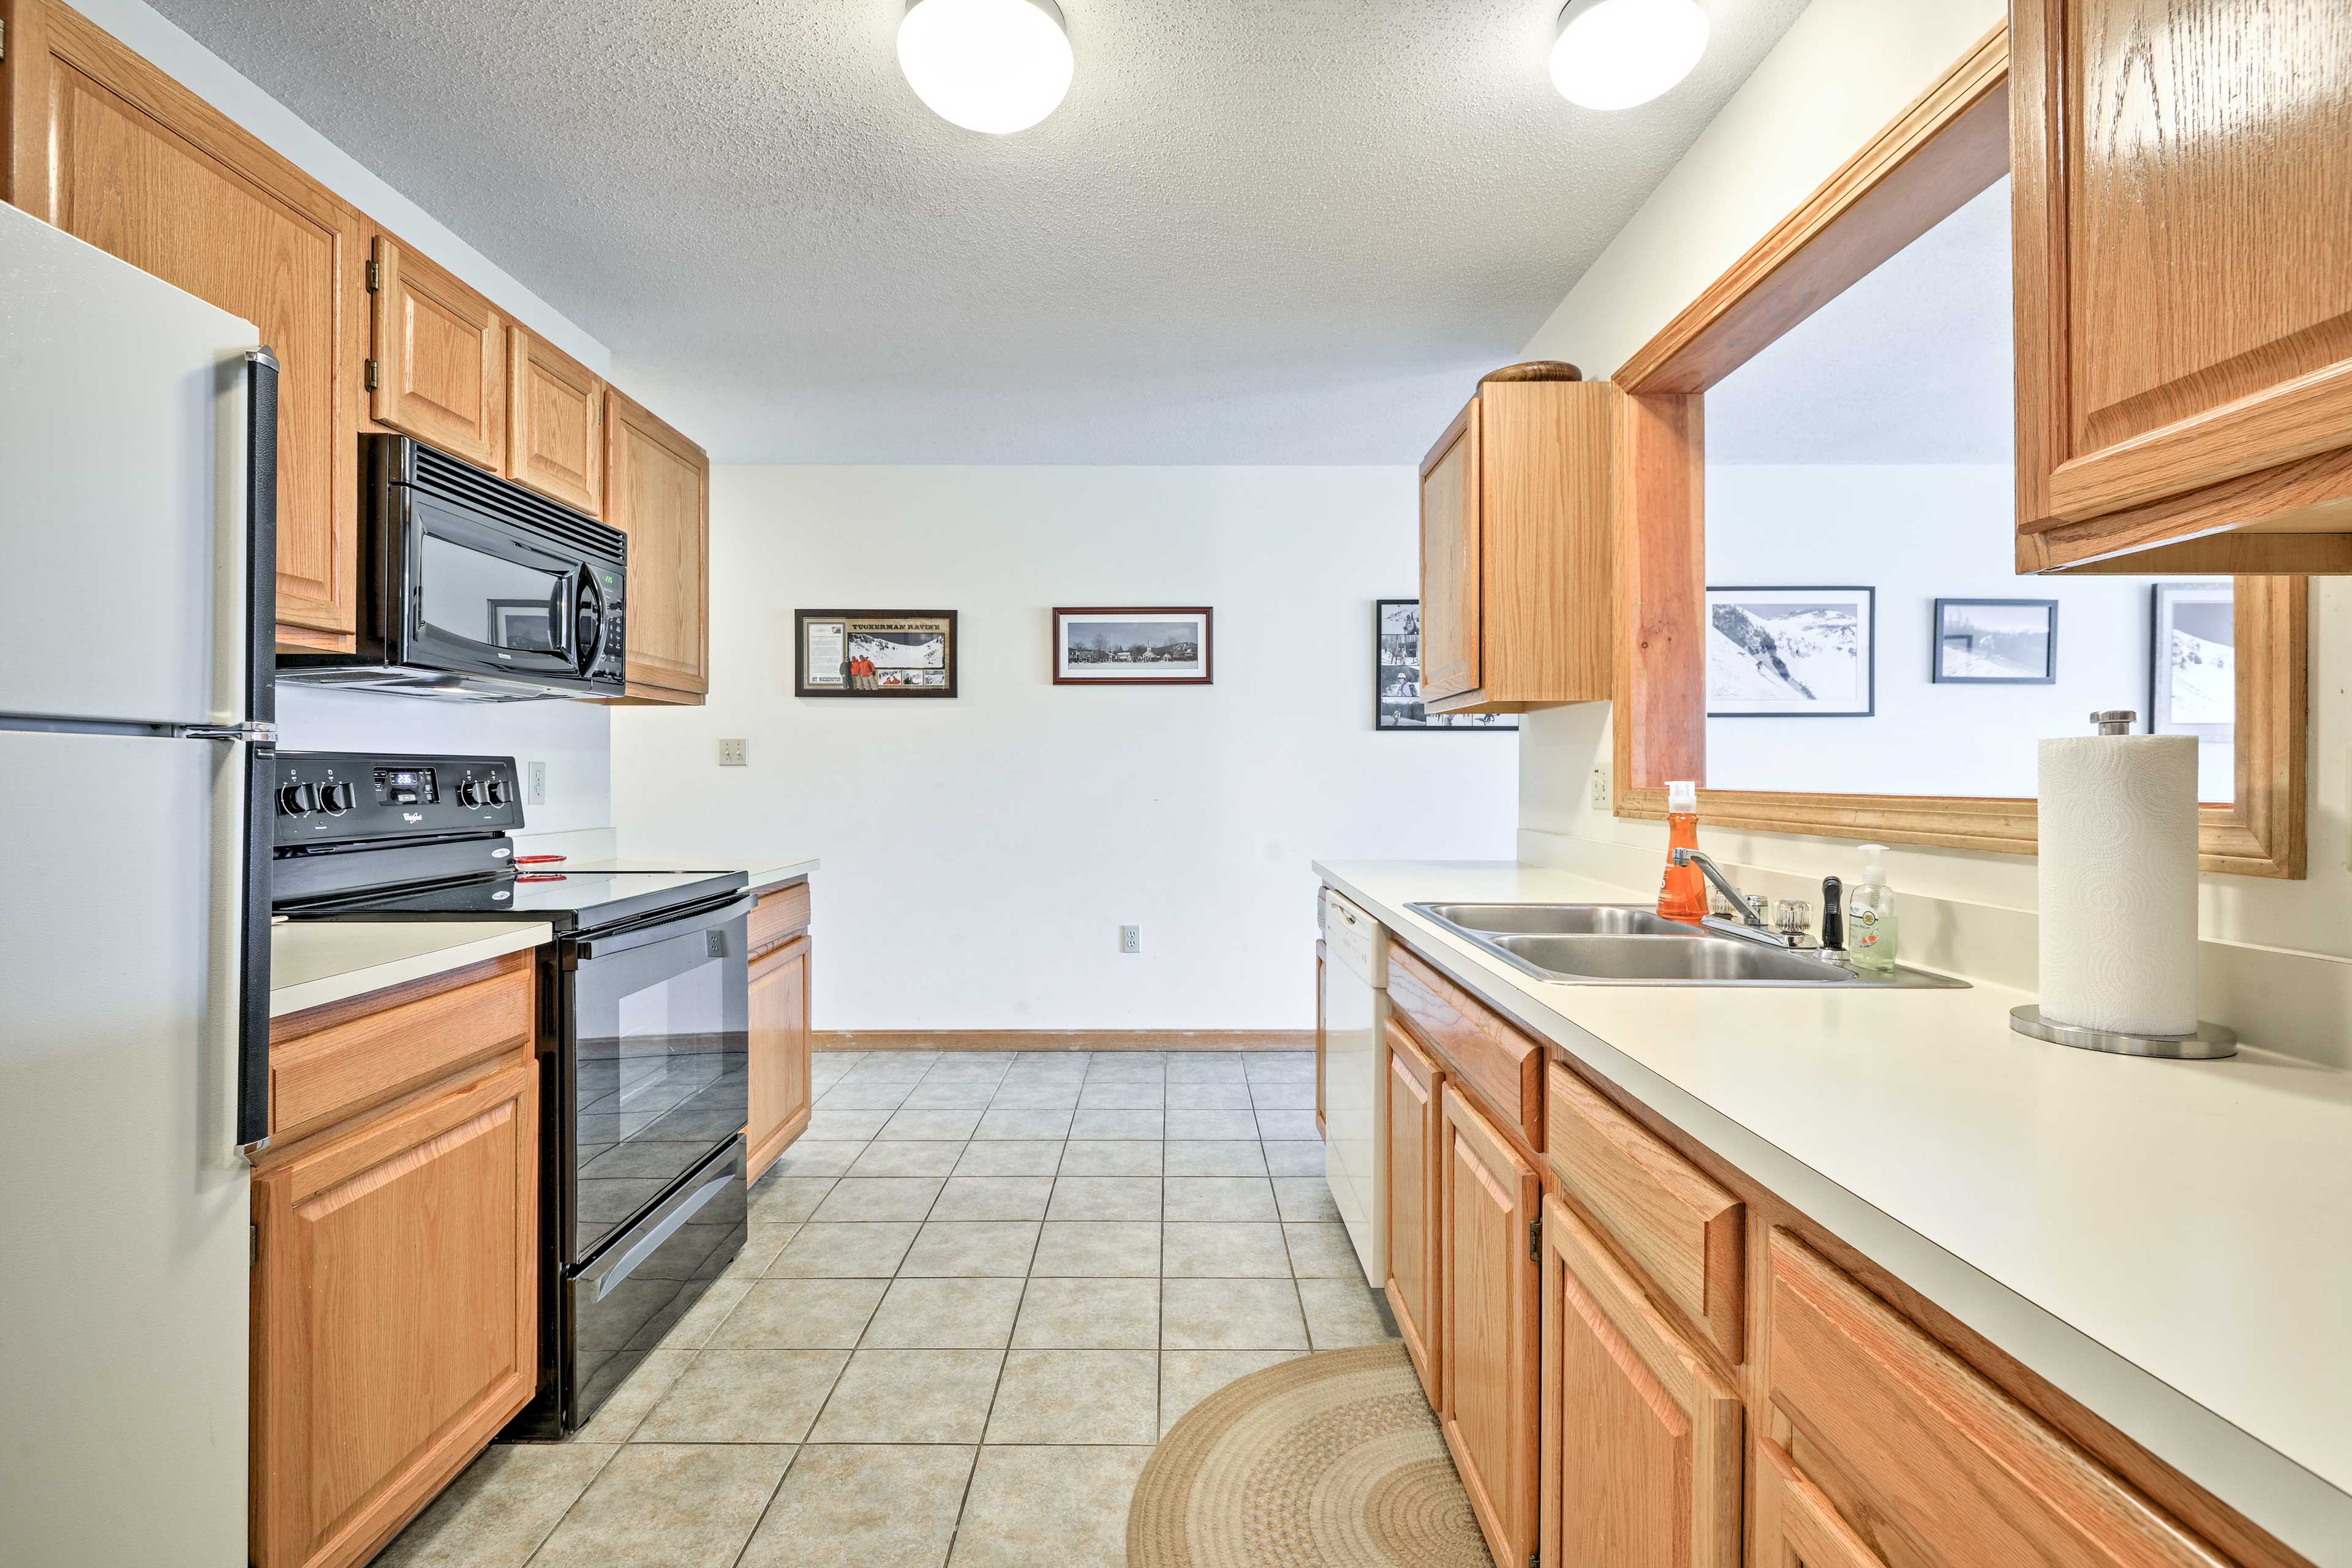 Cook up a traditional family recipe with ease in this fully equipped kitchen.